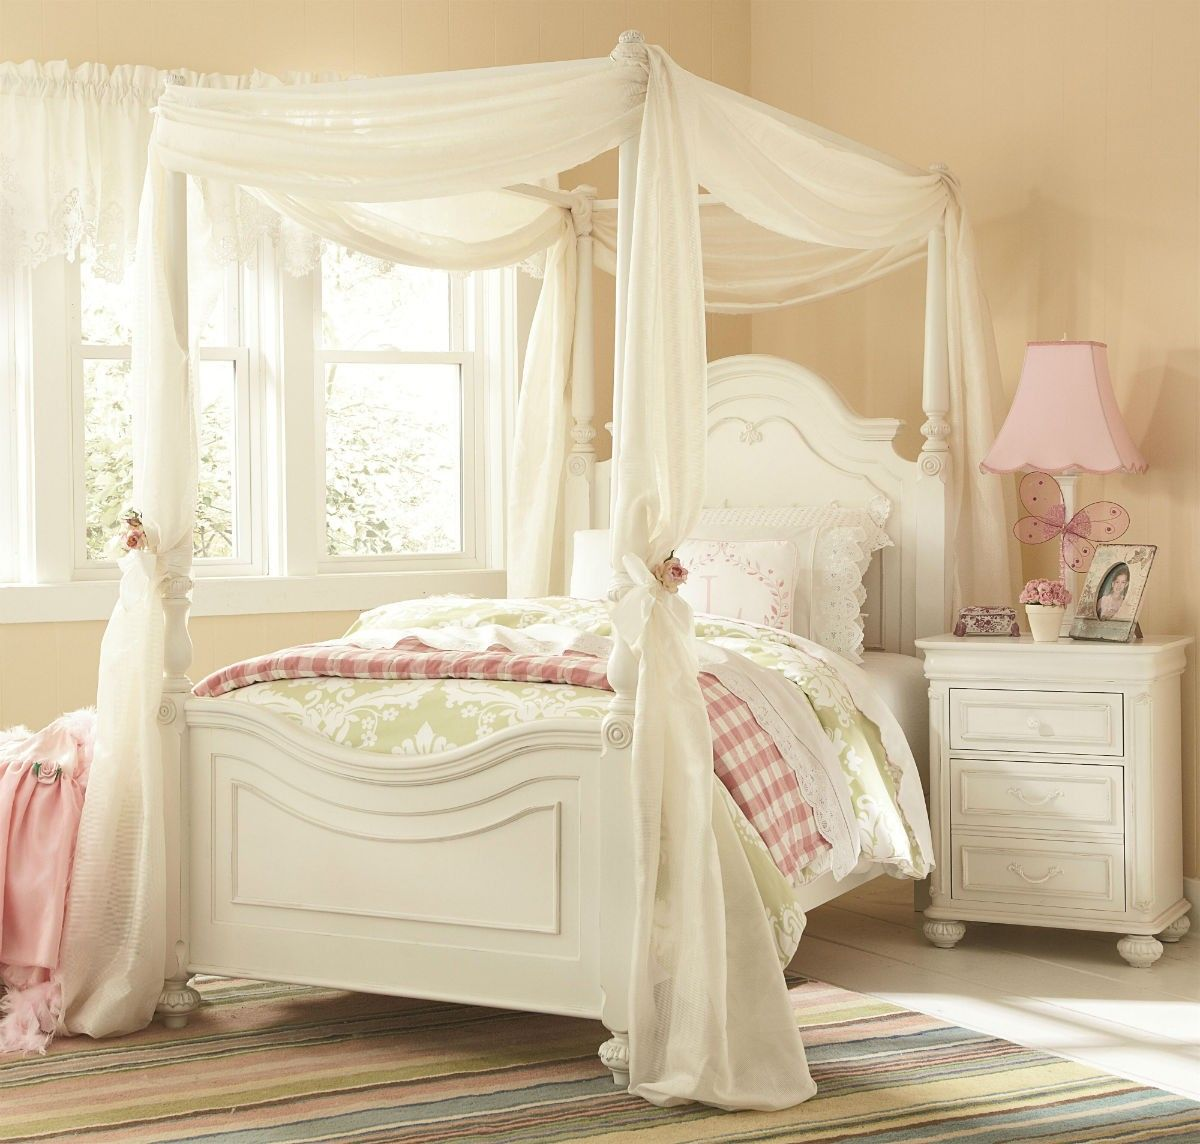 19 Fabulous Canopy Bed Designs For Your Little Princess Photo